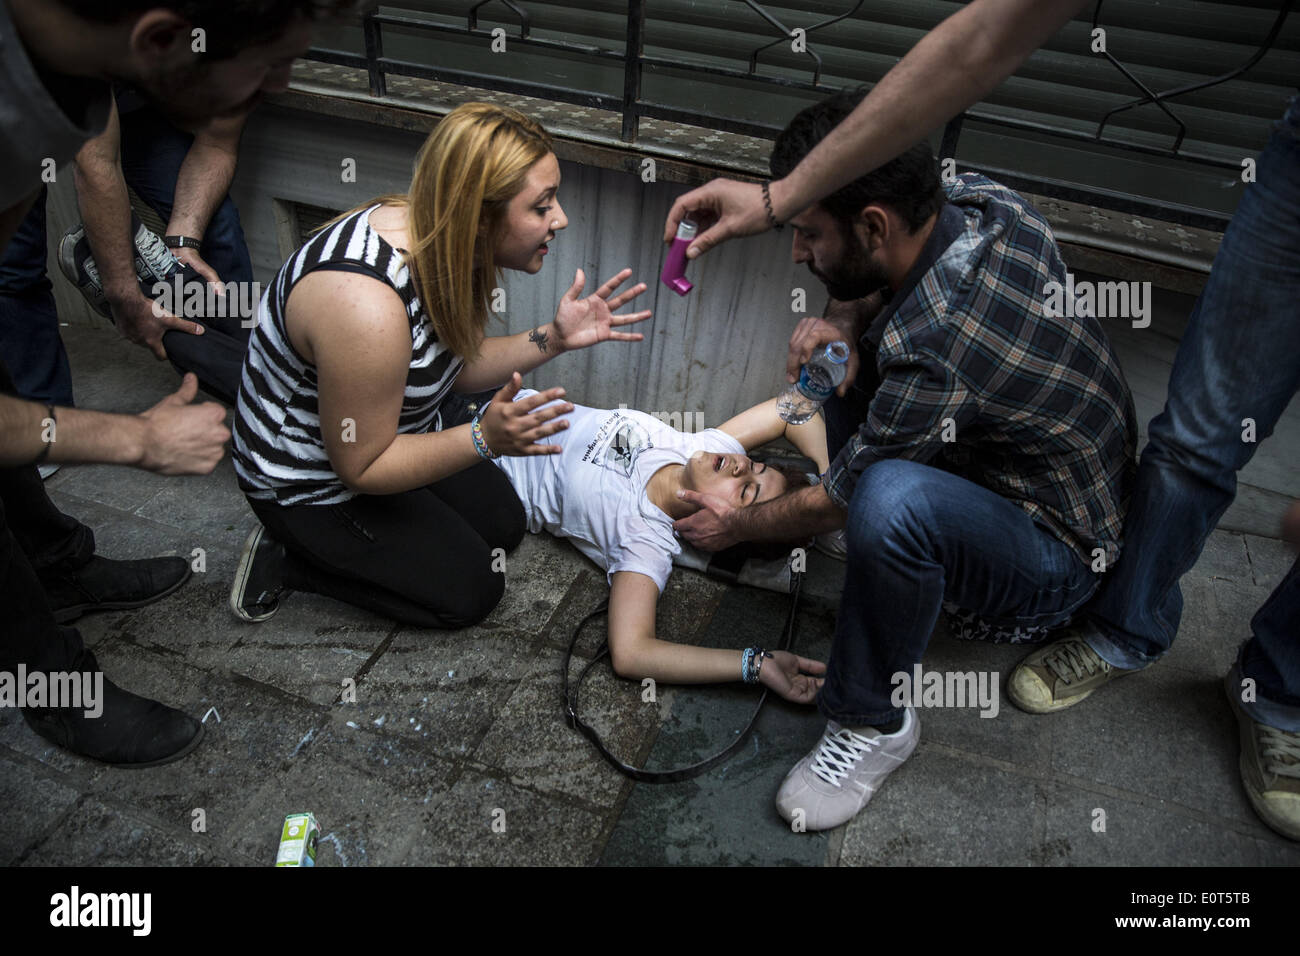 Istanbul, Turkey. 17th May, 2014. A girl fell ill and had difficulty breathing after police fired tear gas at protesters on May 17, 2014 in Istanbul. Anger has been mounting across the country regarding the government's handling and responsibility in the Soma mine accident, the worst in Turkey's history, which killed at least 300 miners. PHOTO BY JODI HILTON/NURPHOTO © Jodi Hilton/NurPhoto/ZUMAPRESS.com/Alamy Live News - Stock Image